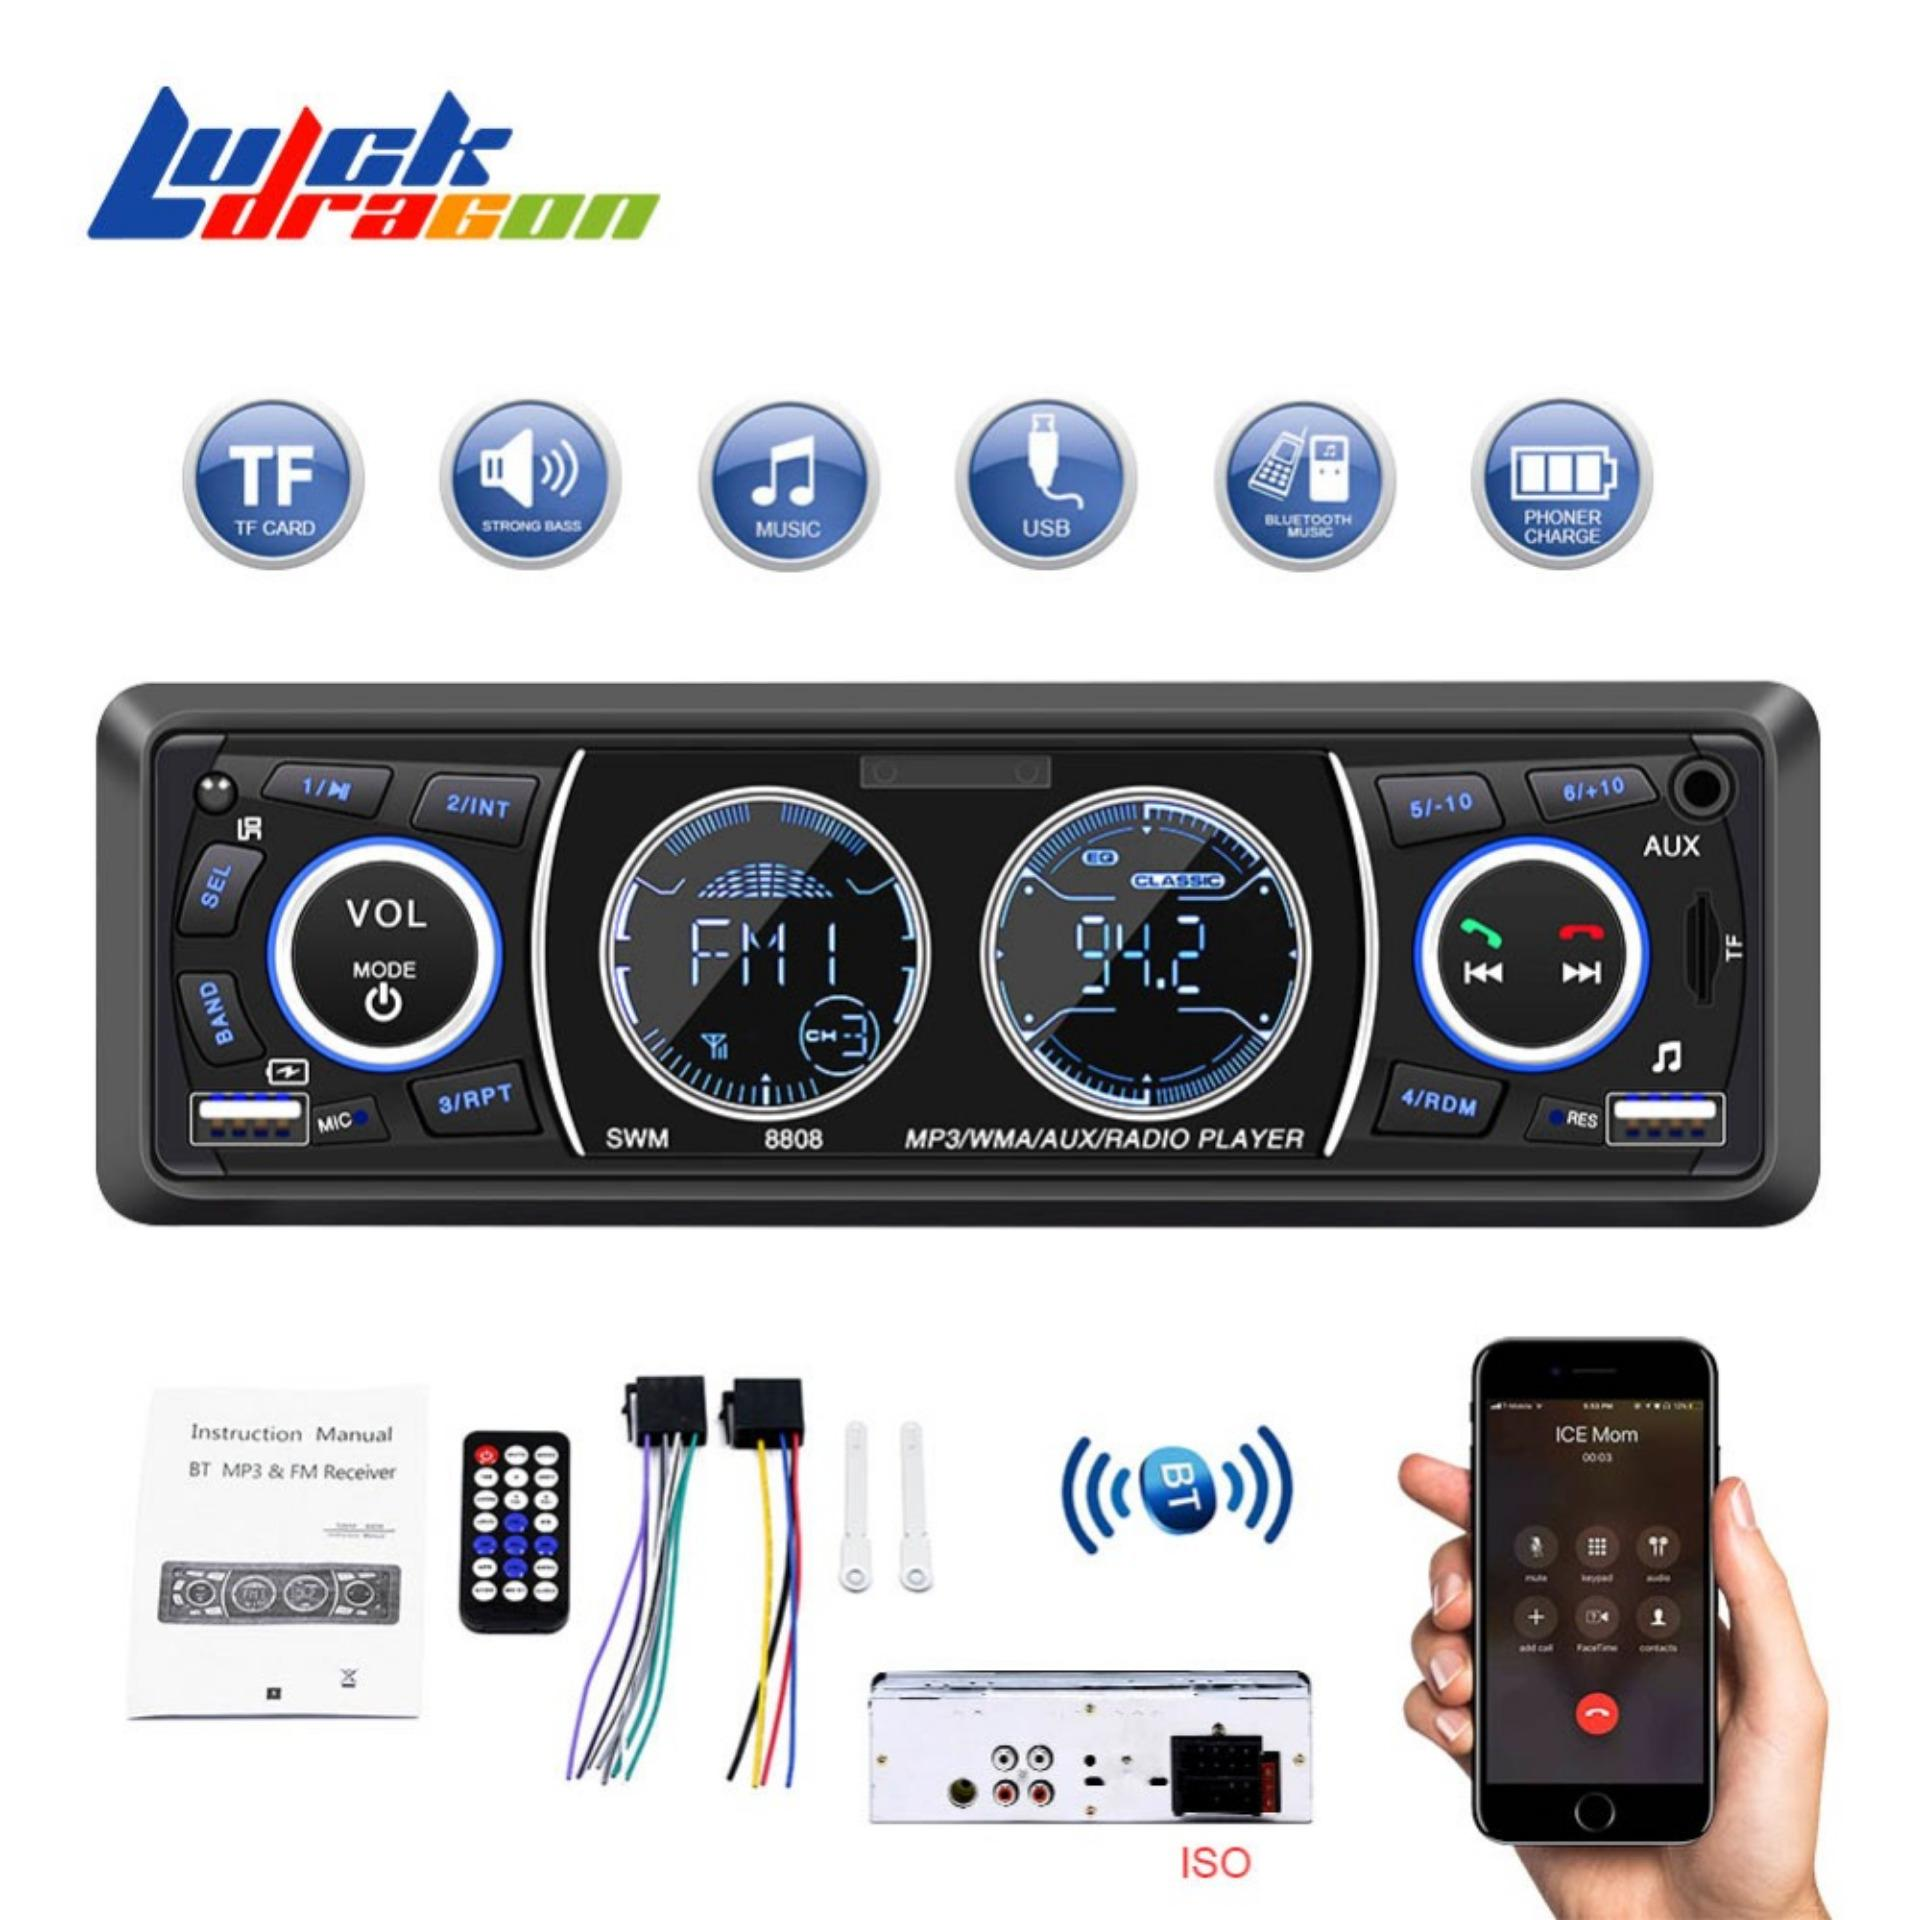 Luckdragon Car Radio 1Din MP3 Multimedia Player support Bluetooth Handsfree  Remote Control FM/AUX/U Disk/TF Card Player Microphone AutoRadio